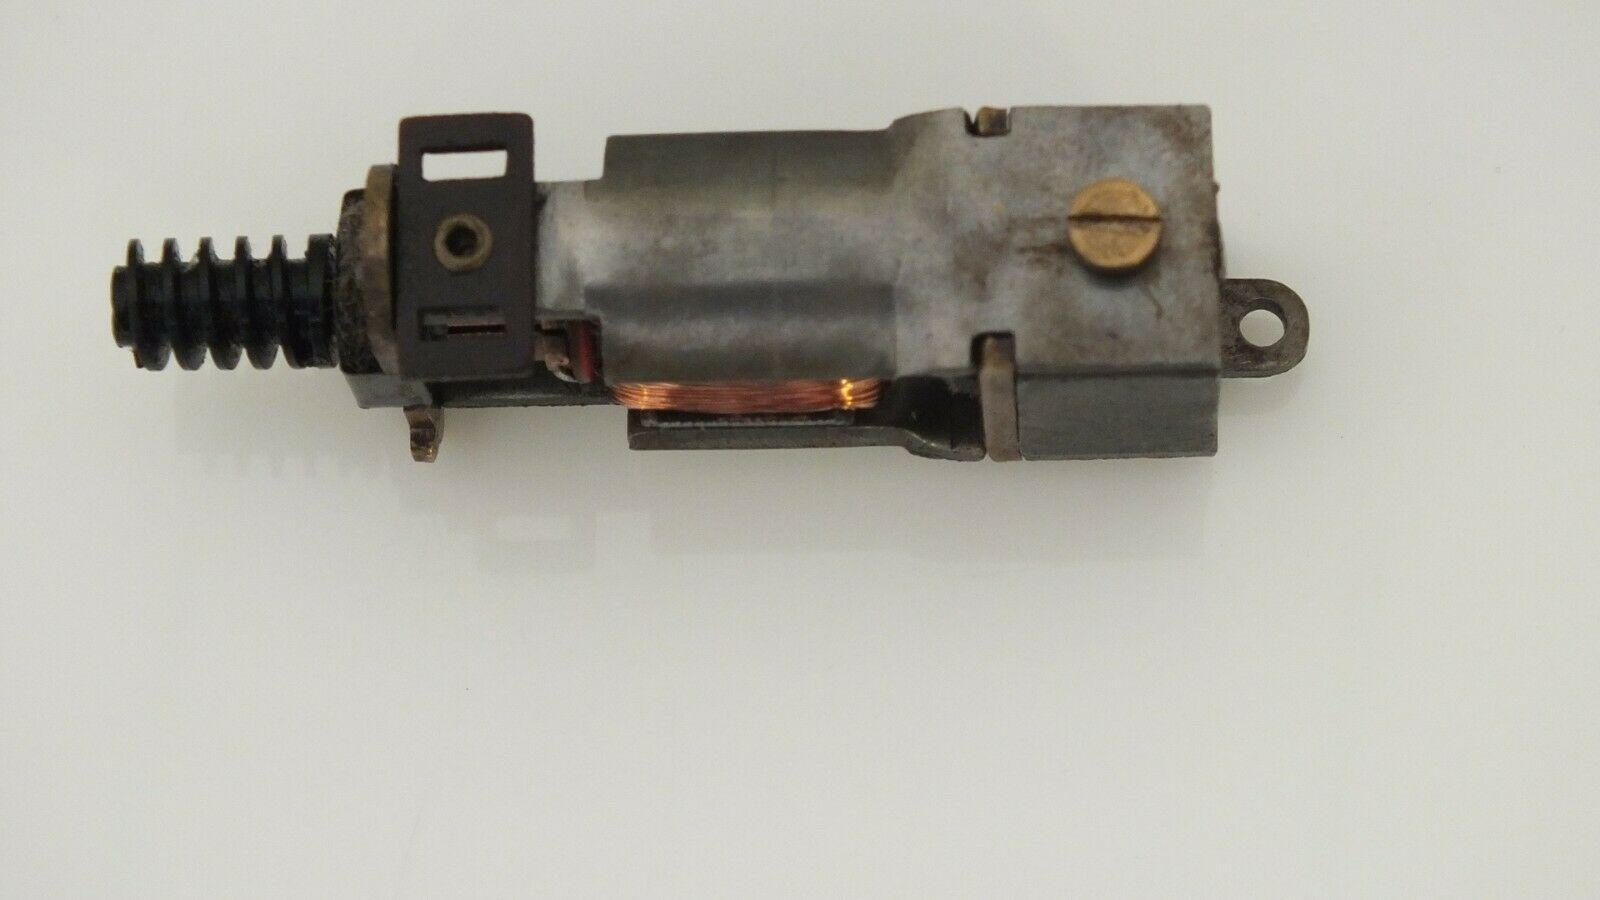 X03RP  # EXCHANGE MOTOR Hornby Triang spares reconditioned PLEASE READ DESC  T6E